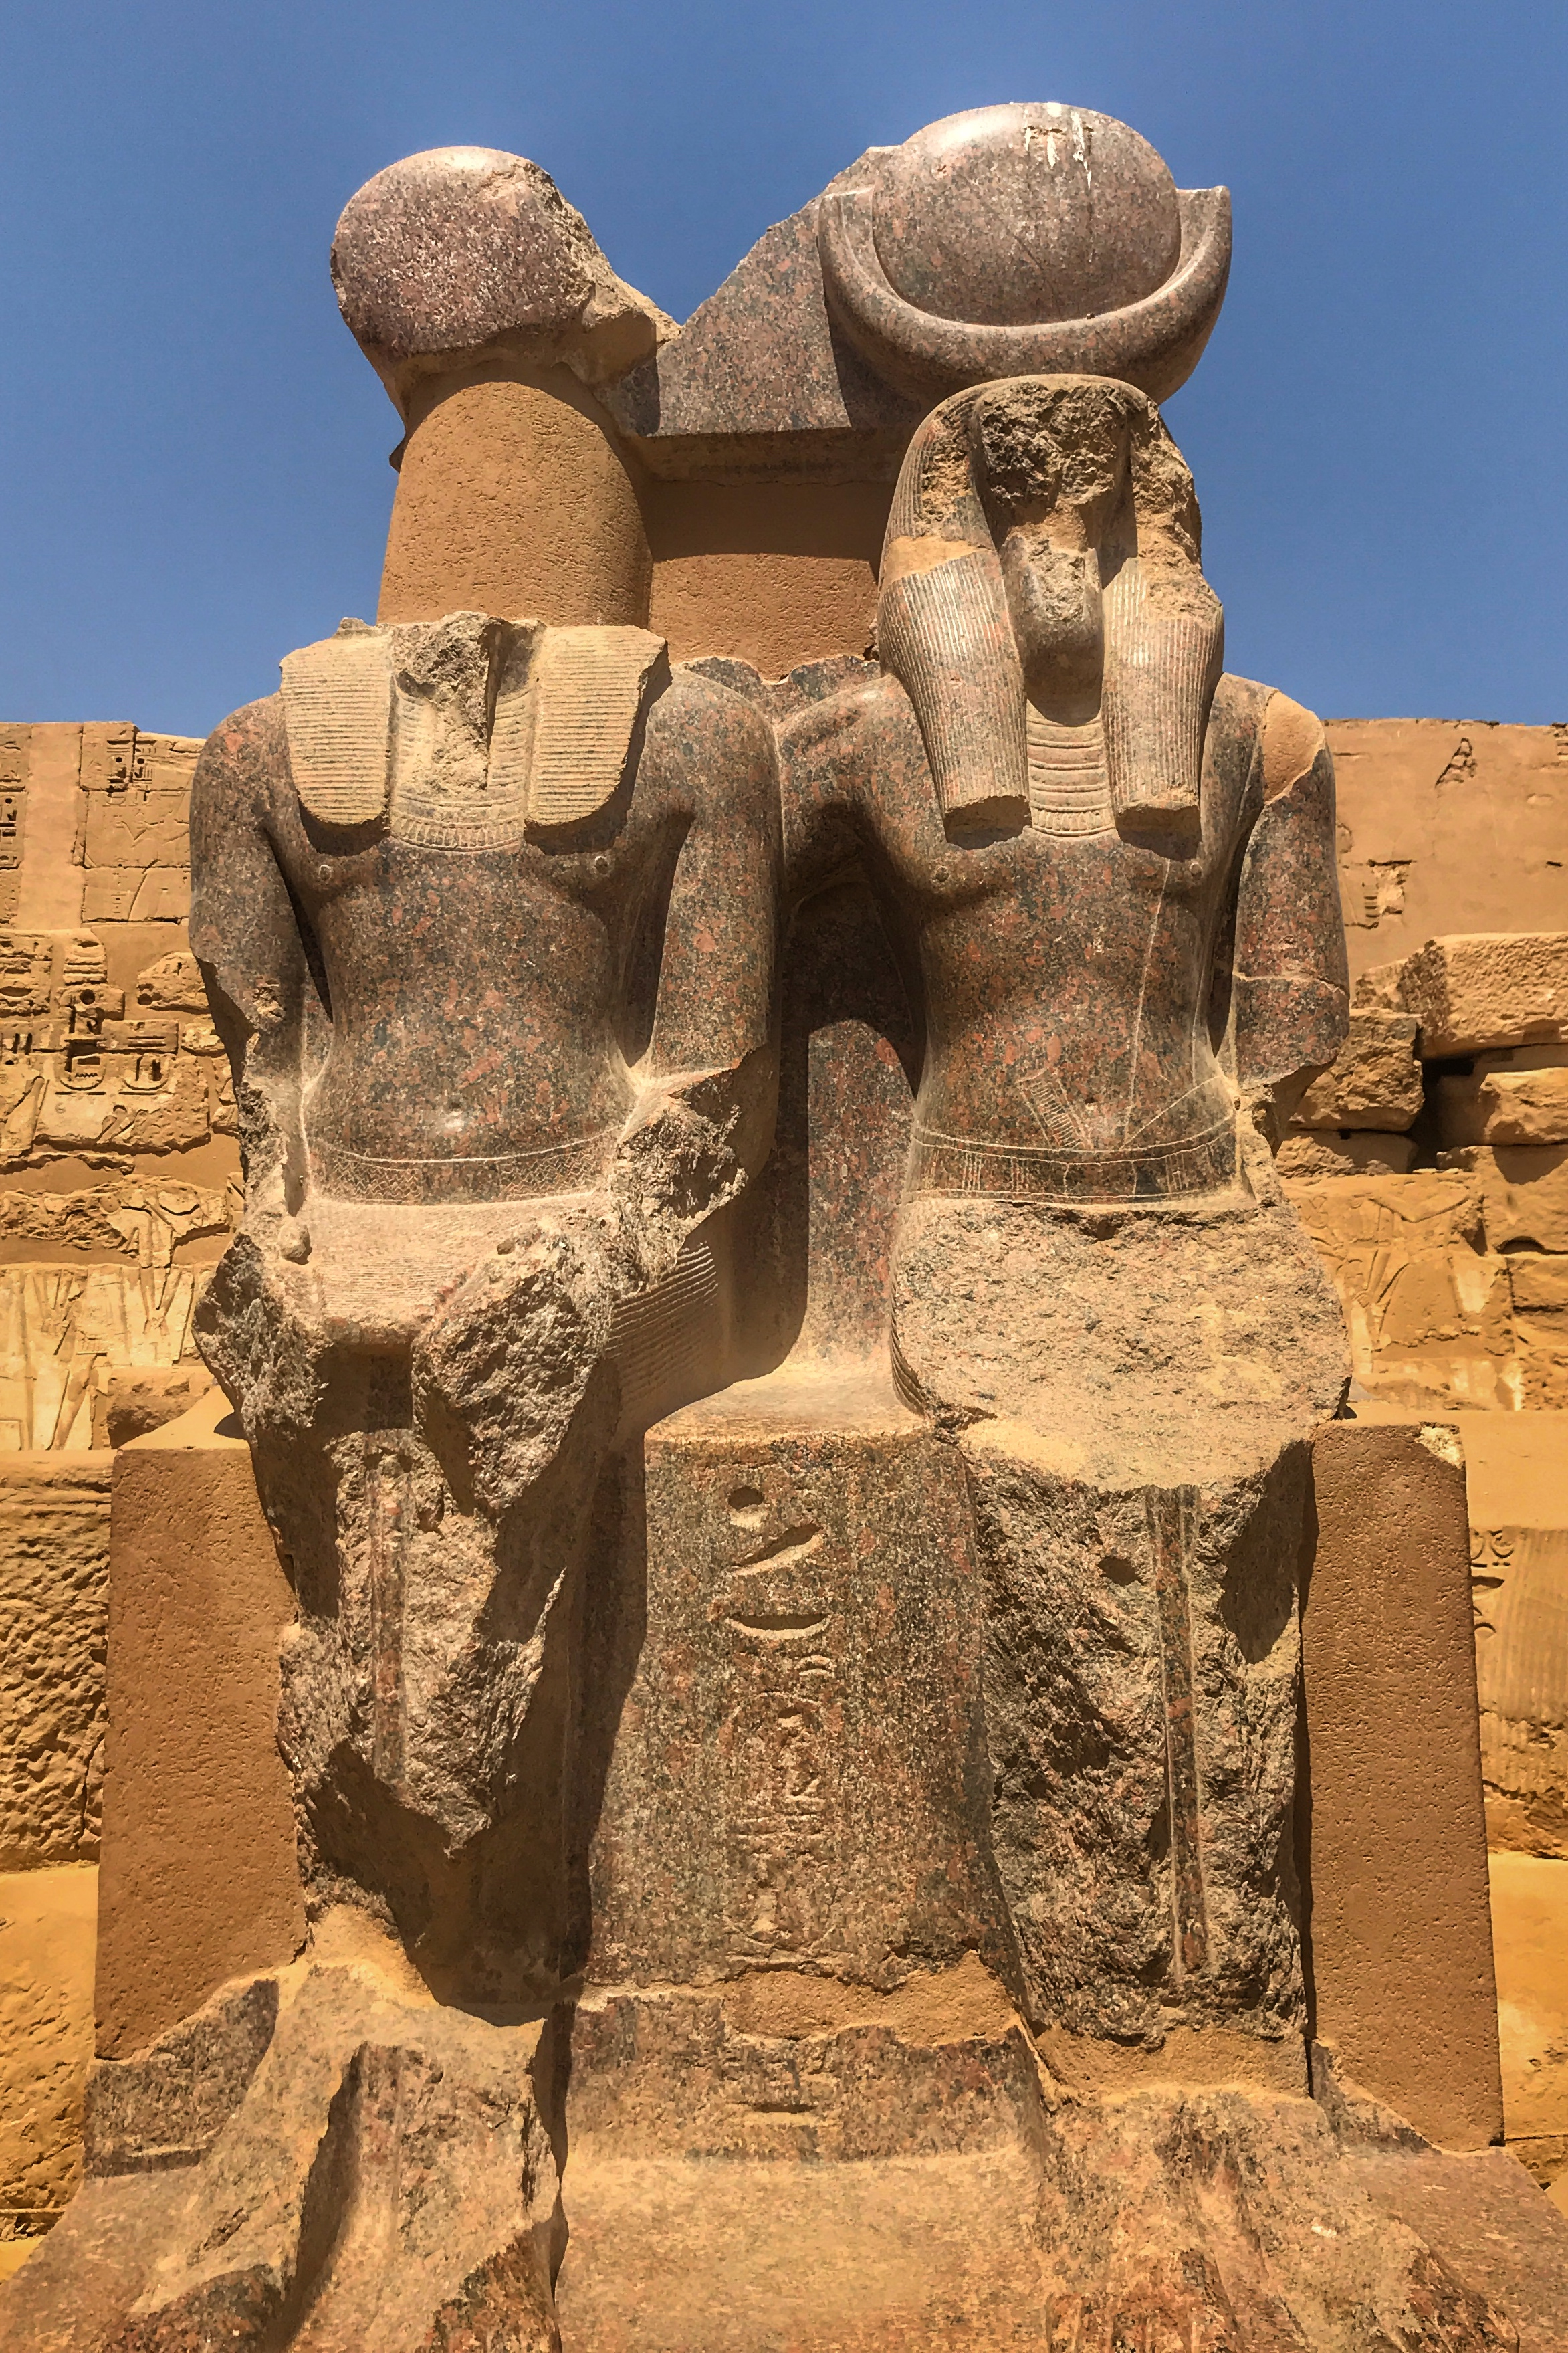 There are four rose granite statues at the very back of the complex. They depict Ramesses III with Maat, the goddess of truth and justice, and Thoth, the god of wisdom